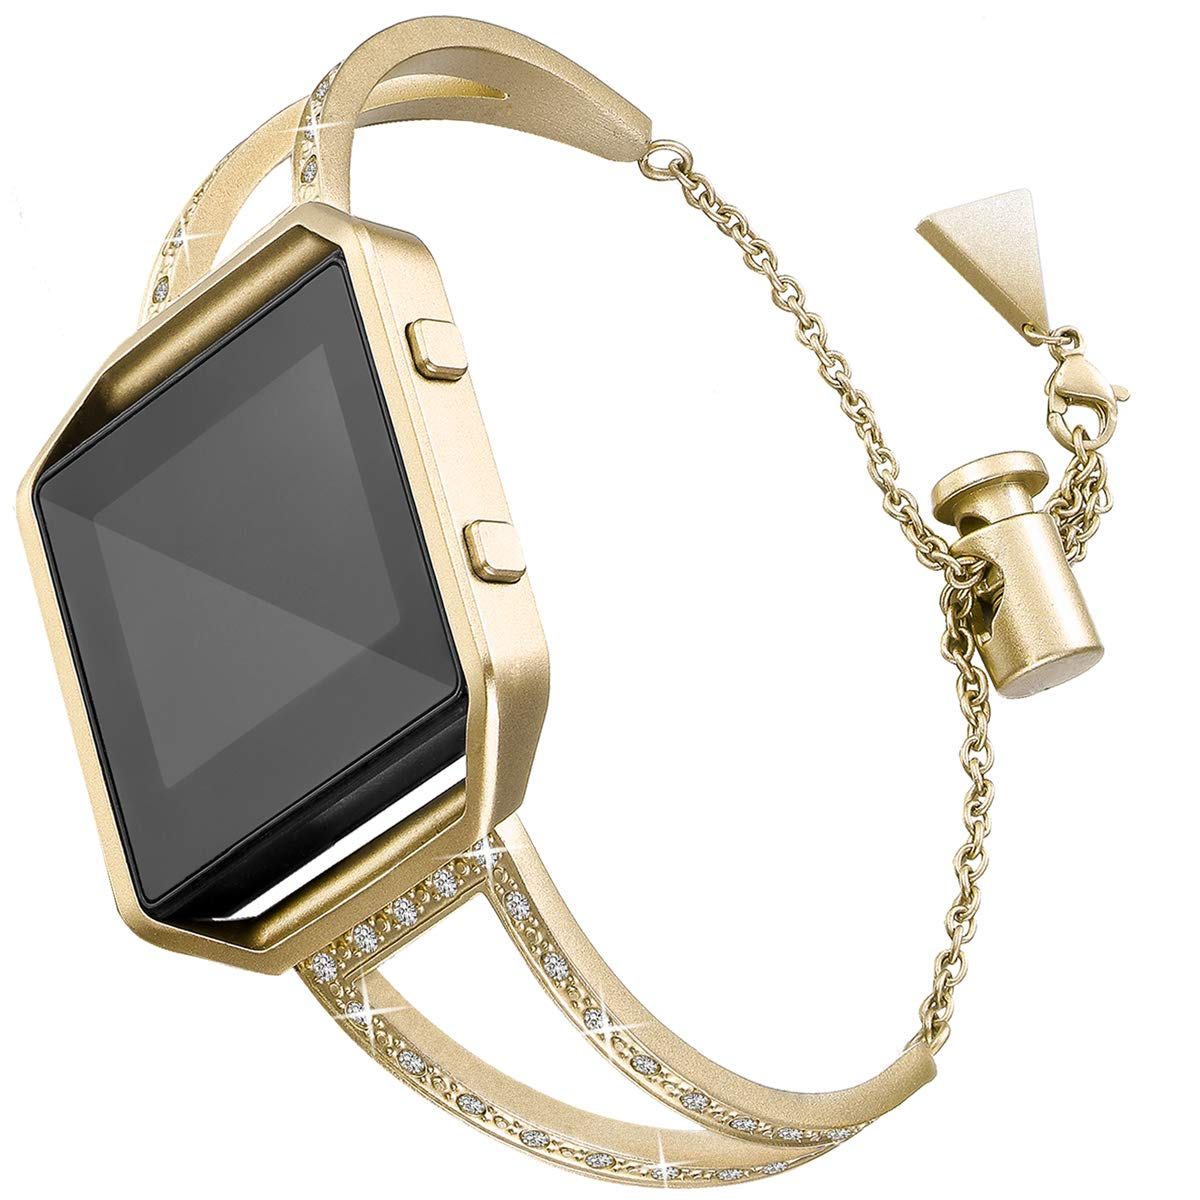 Amcute Compatible with Fitbit Blaze, Women Bling Bands Stainless Steel Metal Dress Jewelry Bracelet Bangle Wristband with Frame, Black, Silver, Rose Pink, Champagne Gold